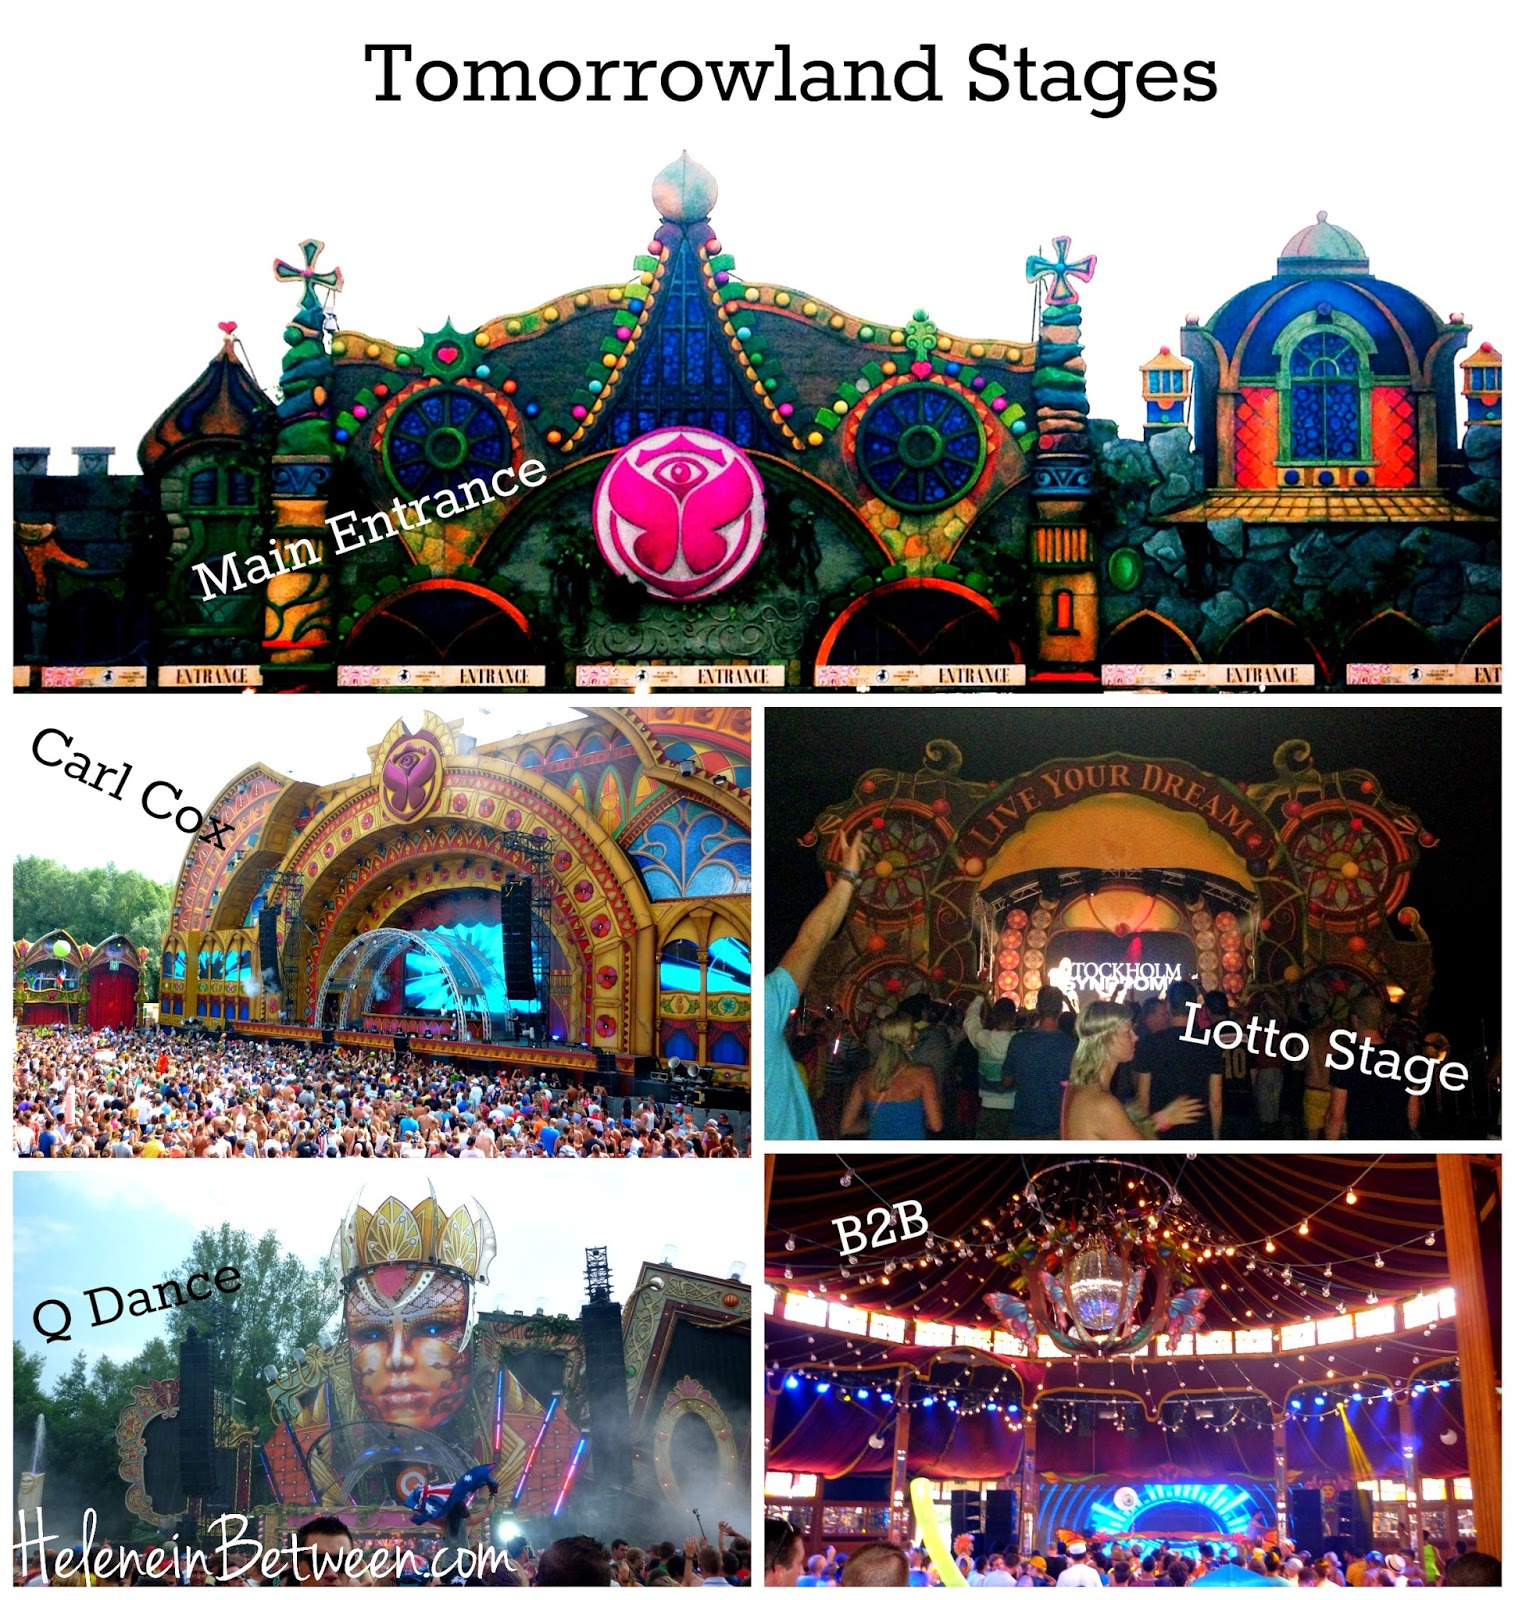 Tomorrowland 2014 stages